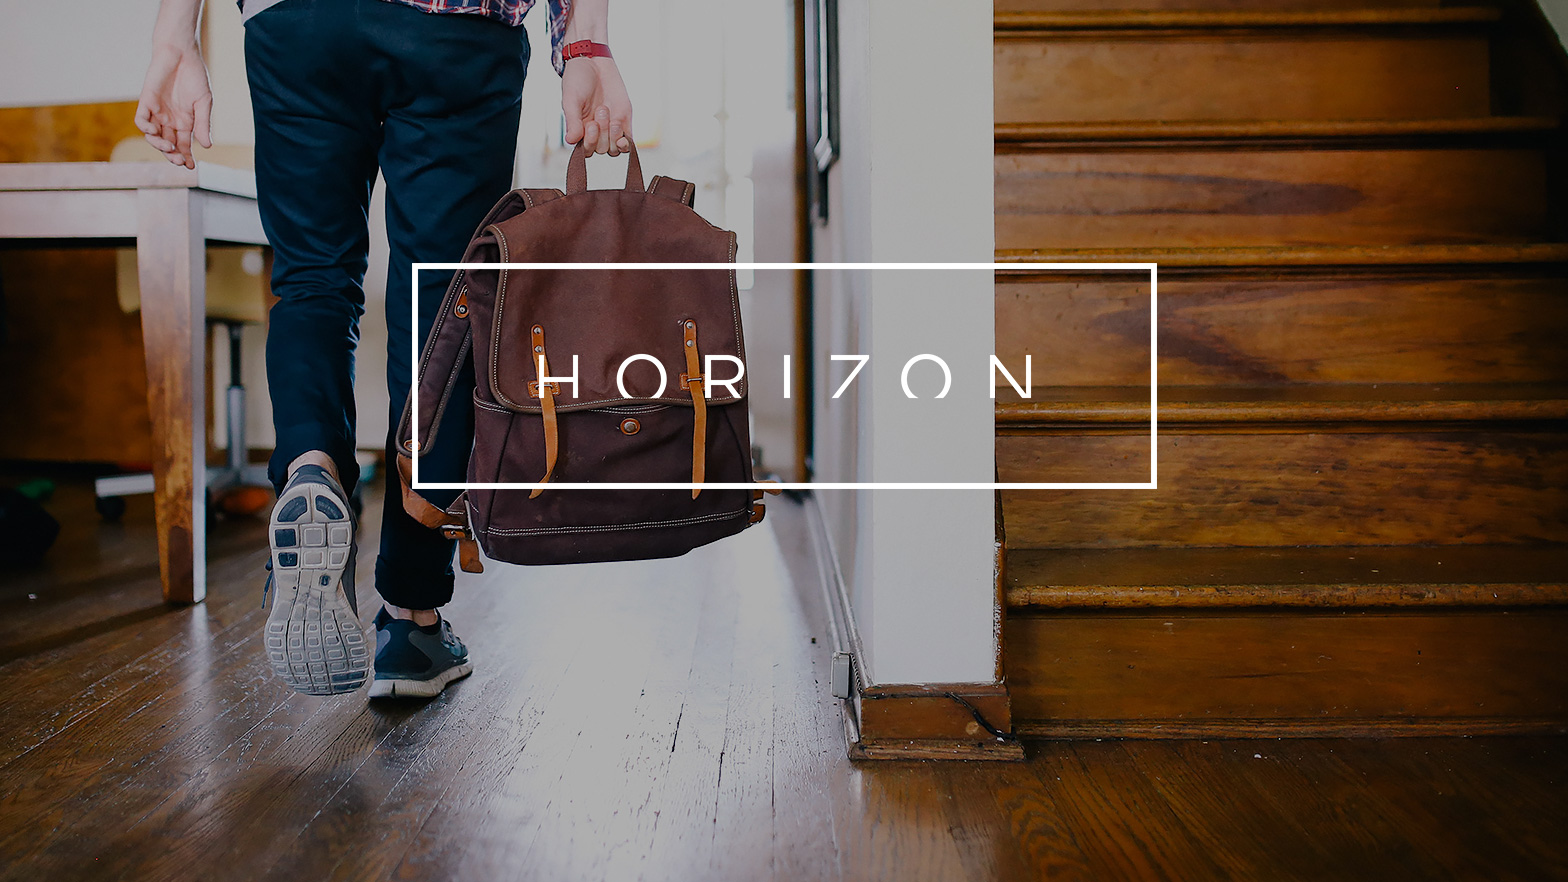 Horizon App Providing Private Hospitality Exchange Networks For Communities